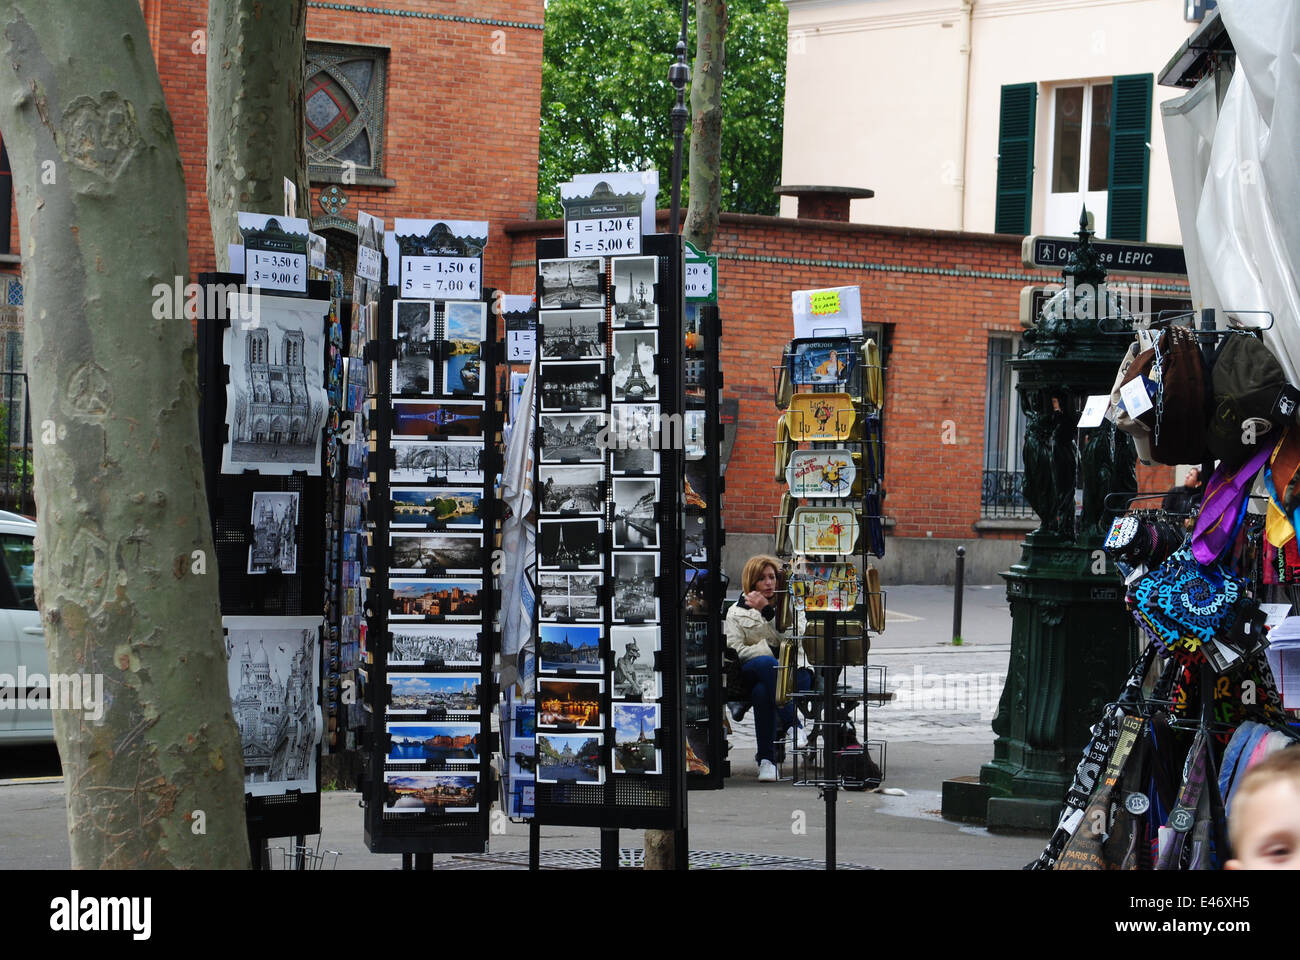 shop with postcards in Paris - Stock Image